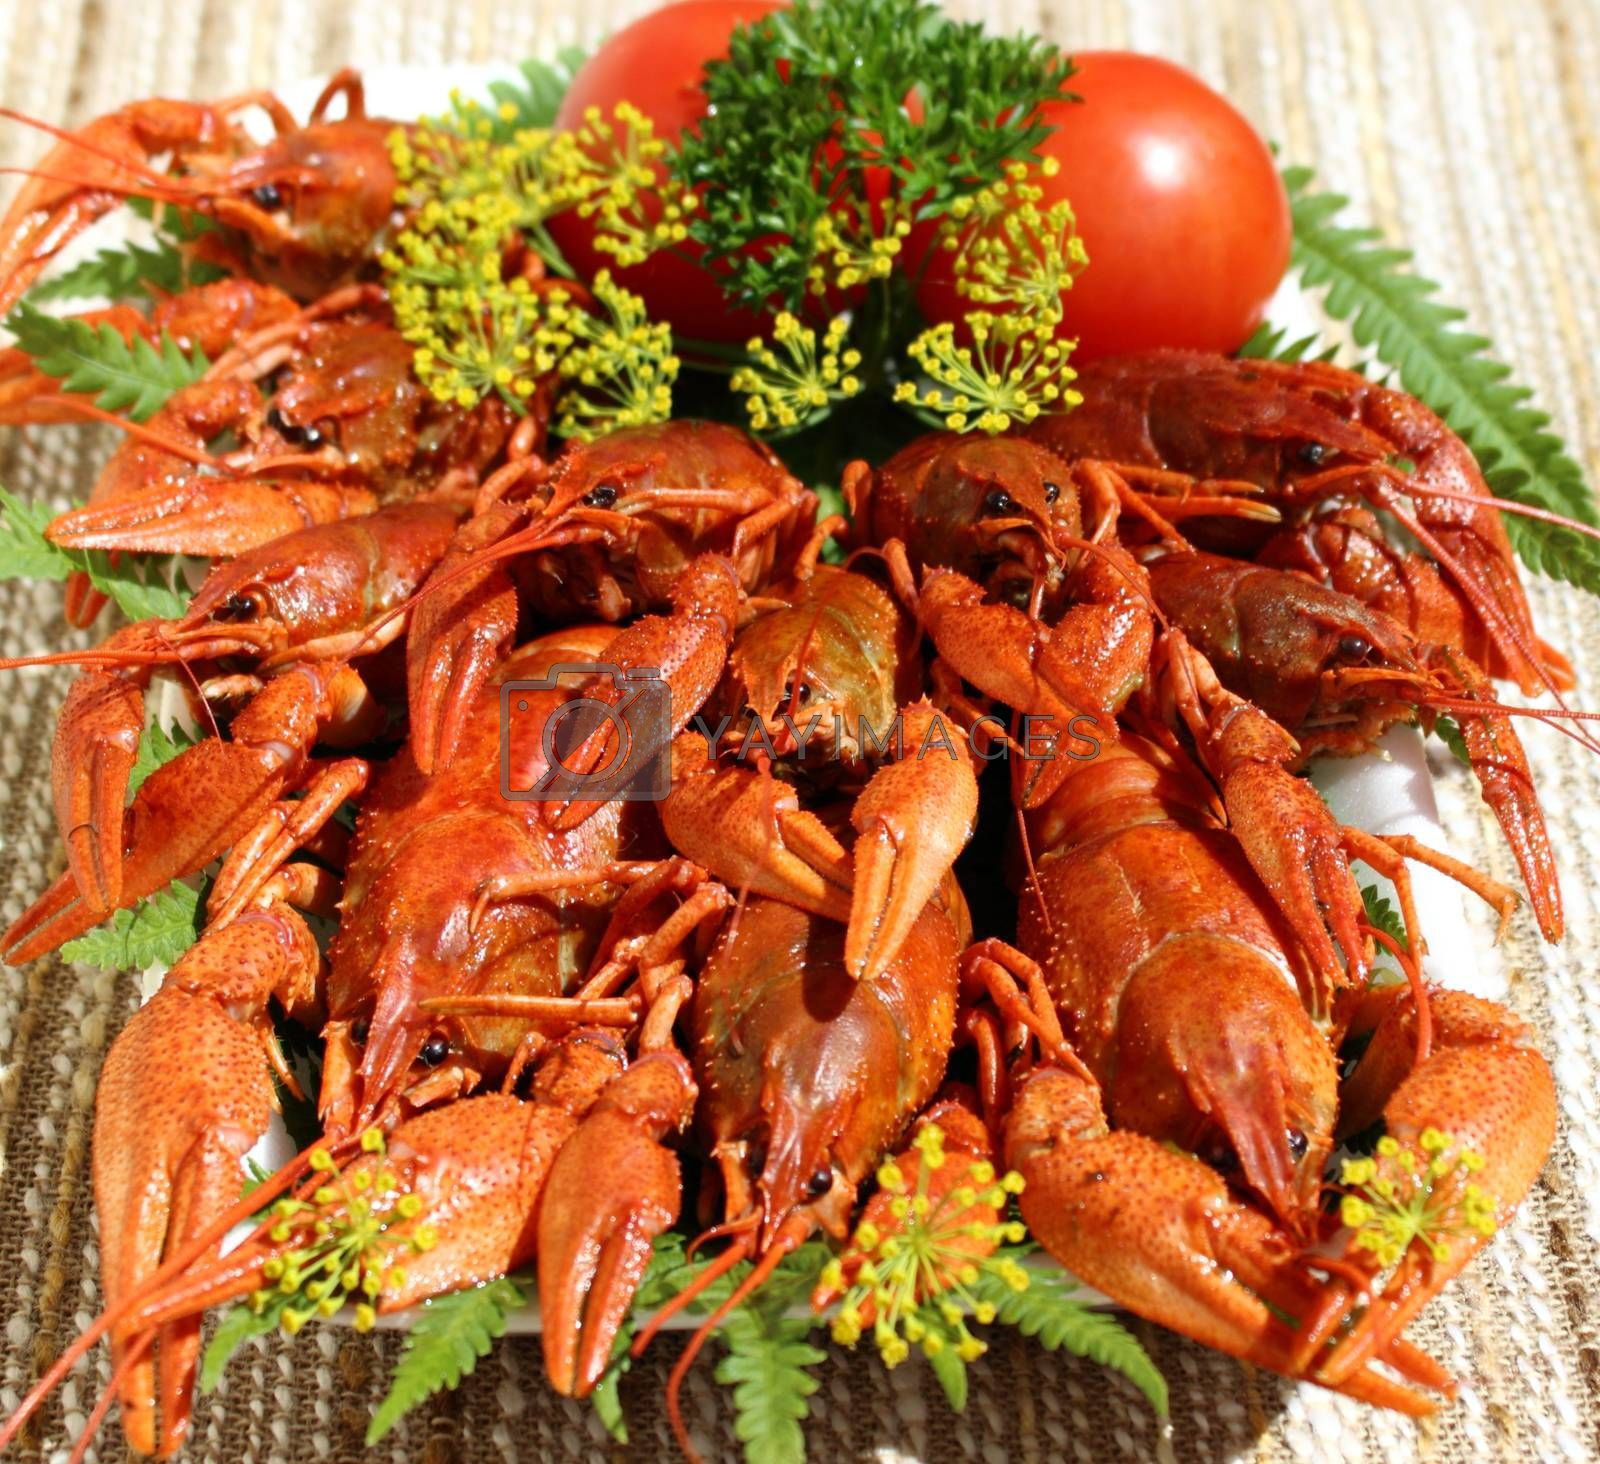 Royalty free image of Cooked crayfish by openas